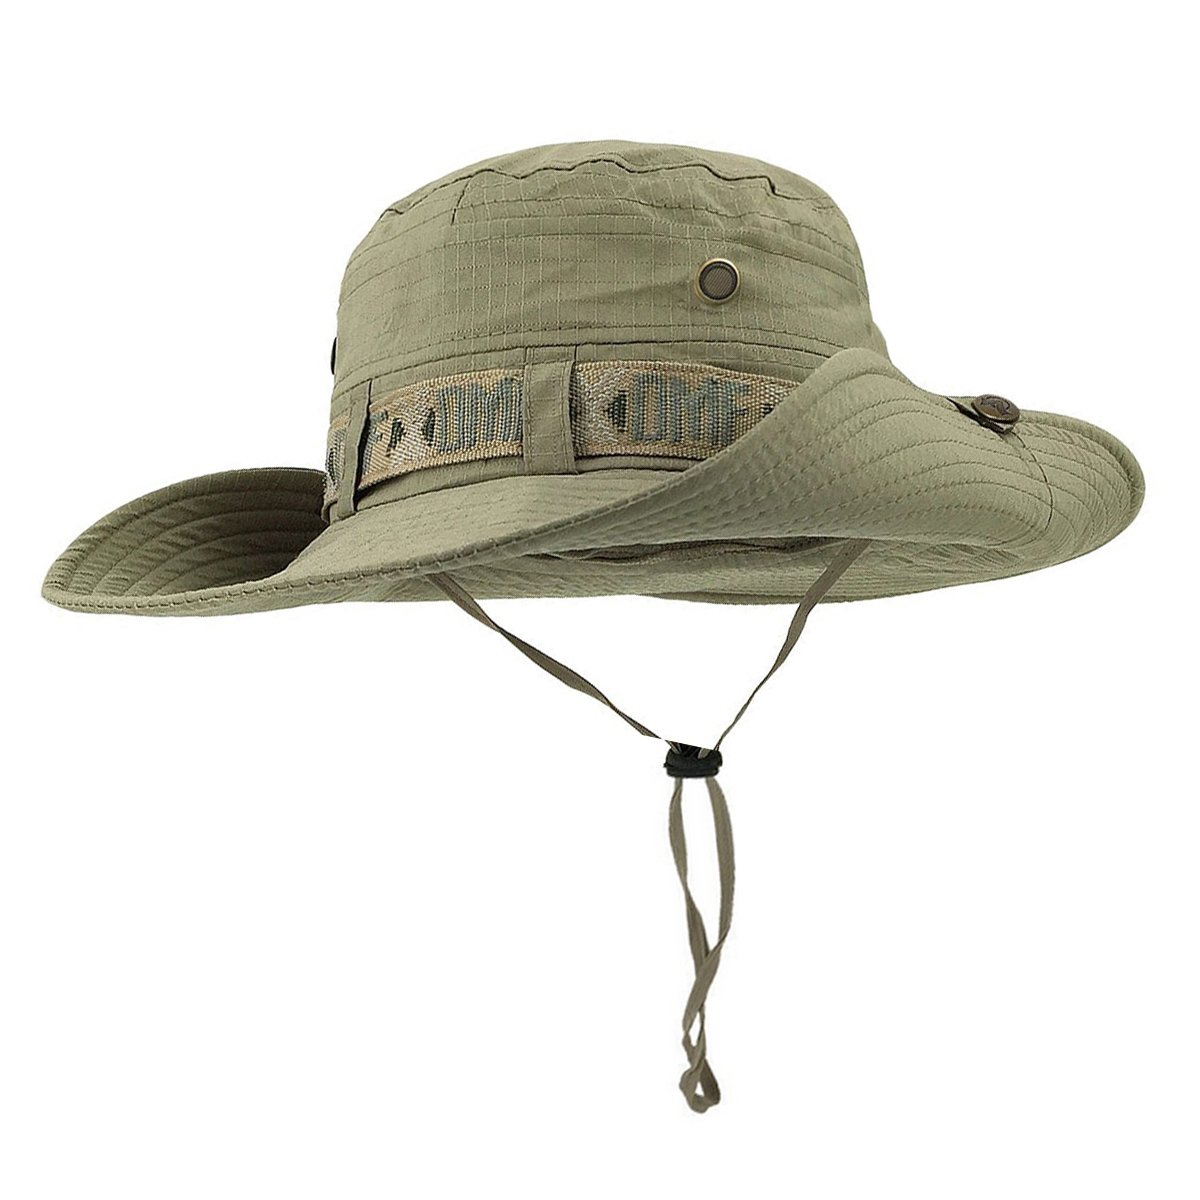 6f256919607e3 Amazon.com   Fishing Hat Boonie Hat Summer Wide Brim Bucket Hat Sun UV  Protection Safari Cap Outdoor Waterproof Hunting Hat (deep greed)   Sports    Outdoors